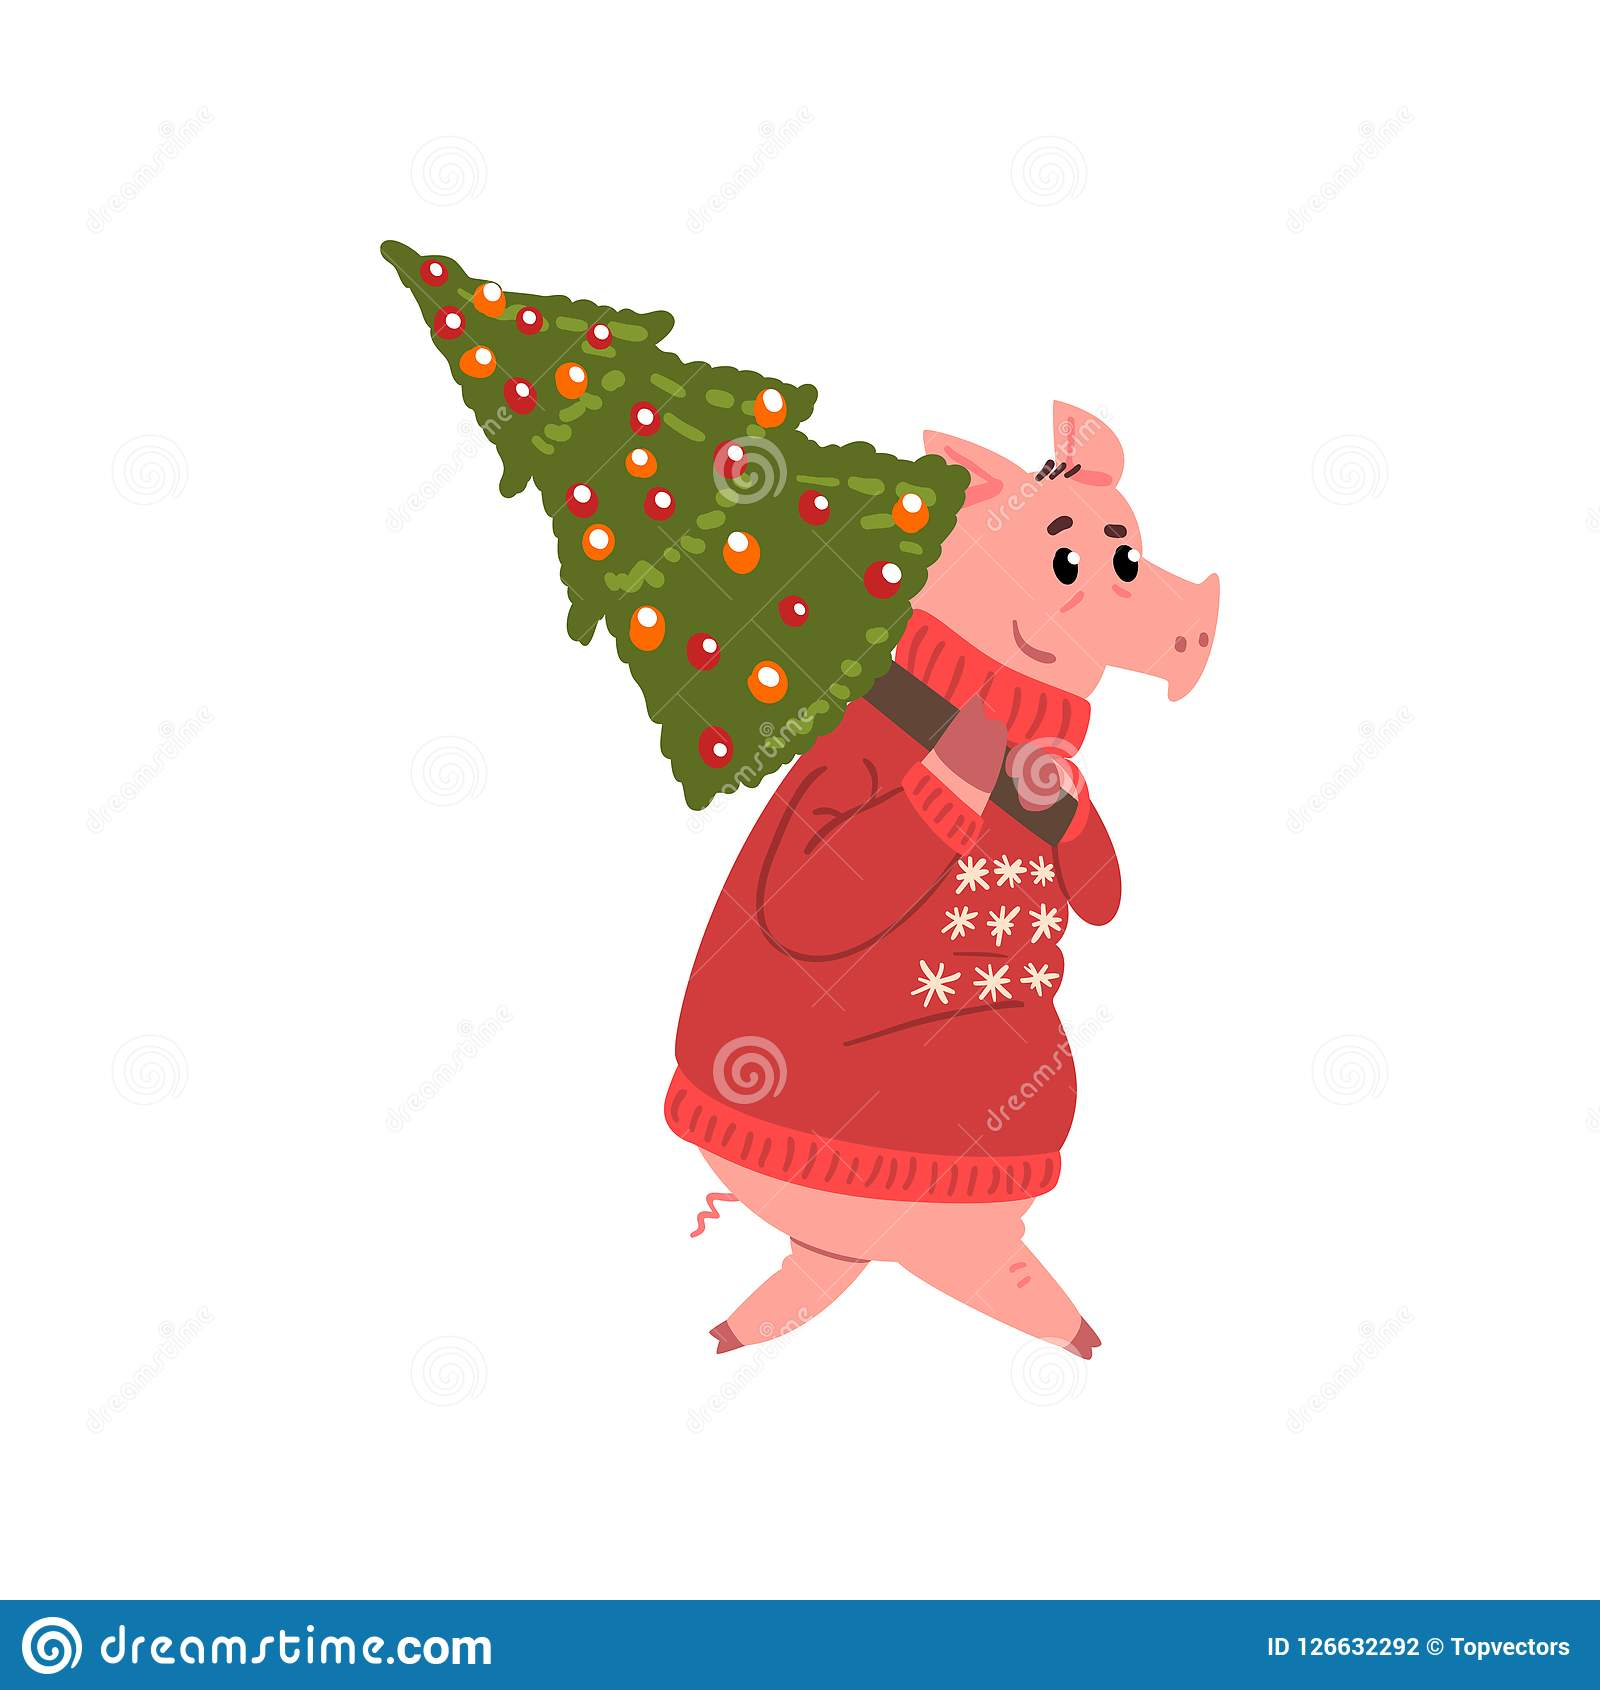 Cute Pig Character Dressed In Red Warm Sweater Carrying Christmas